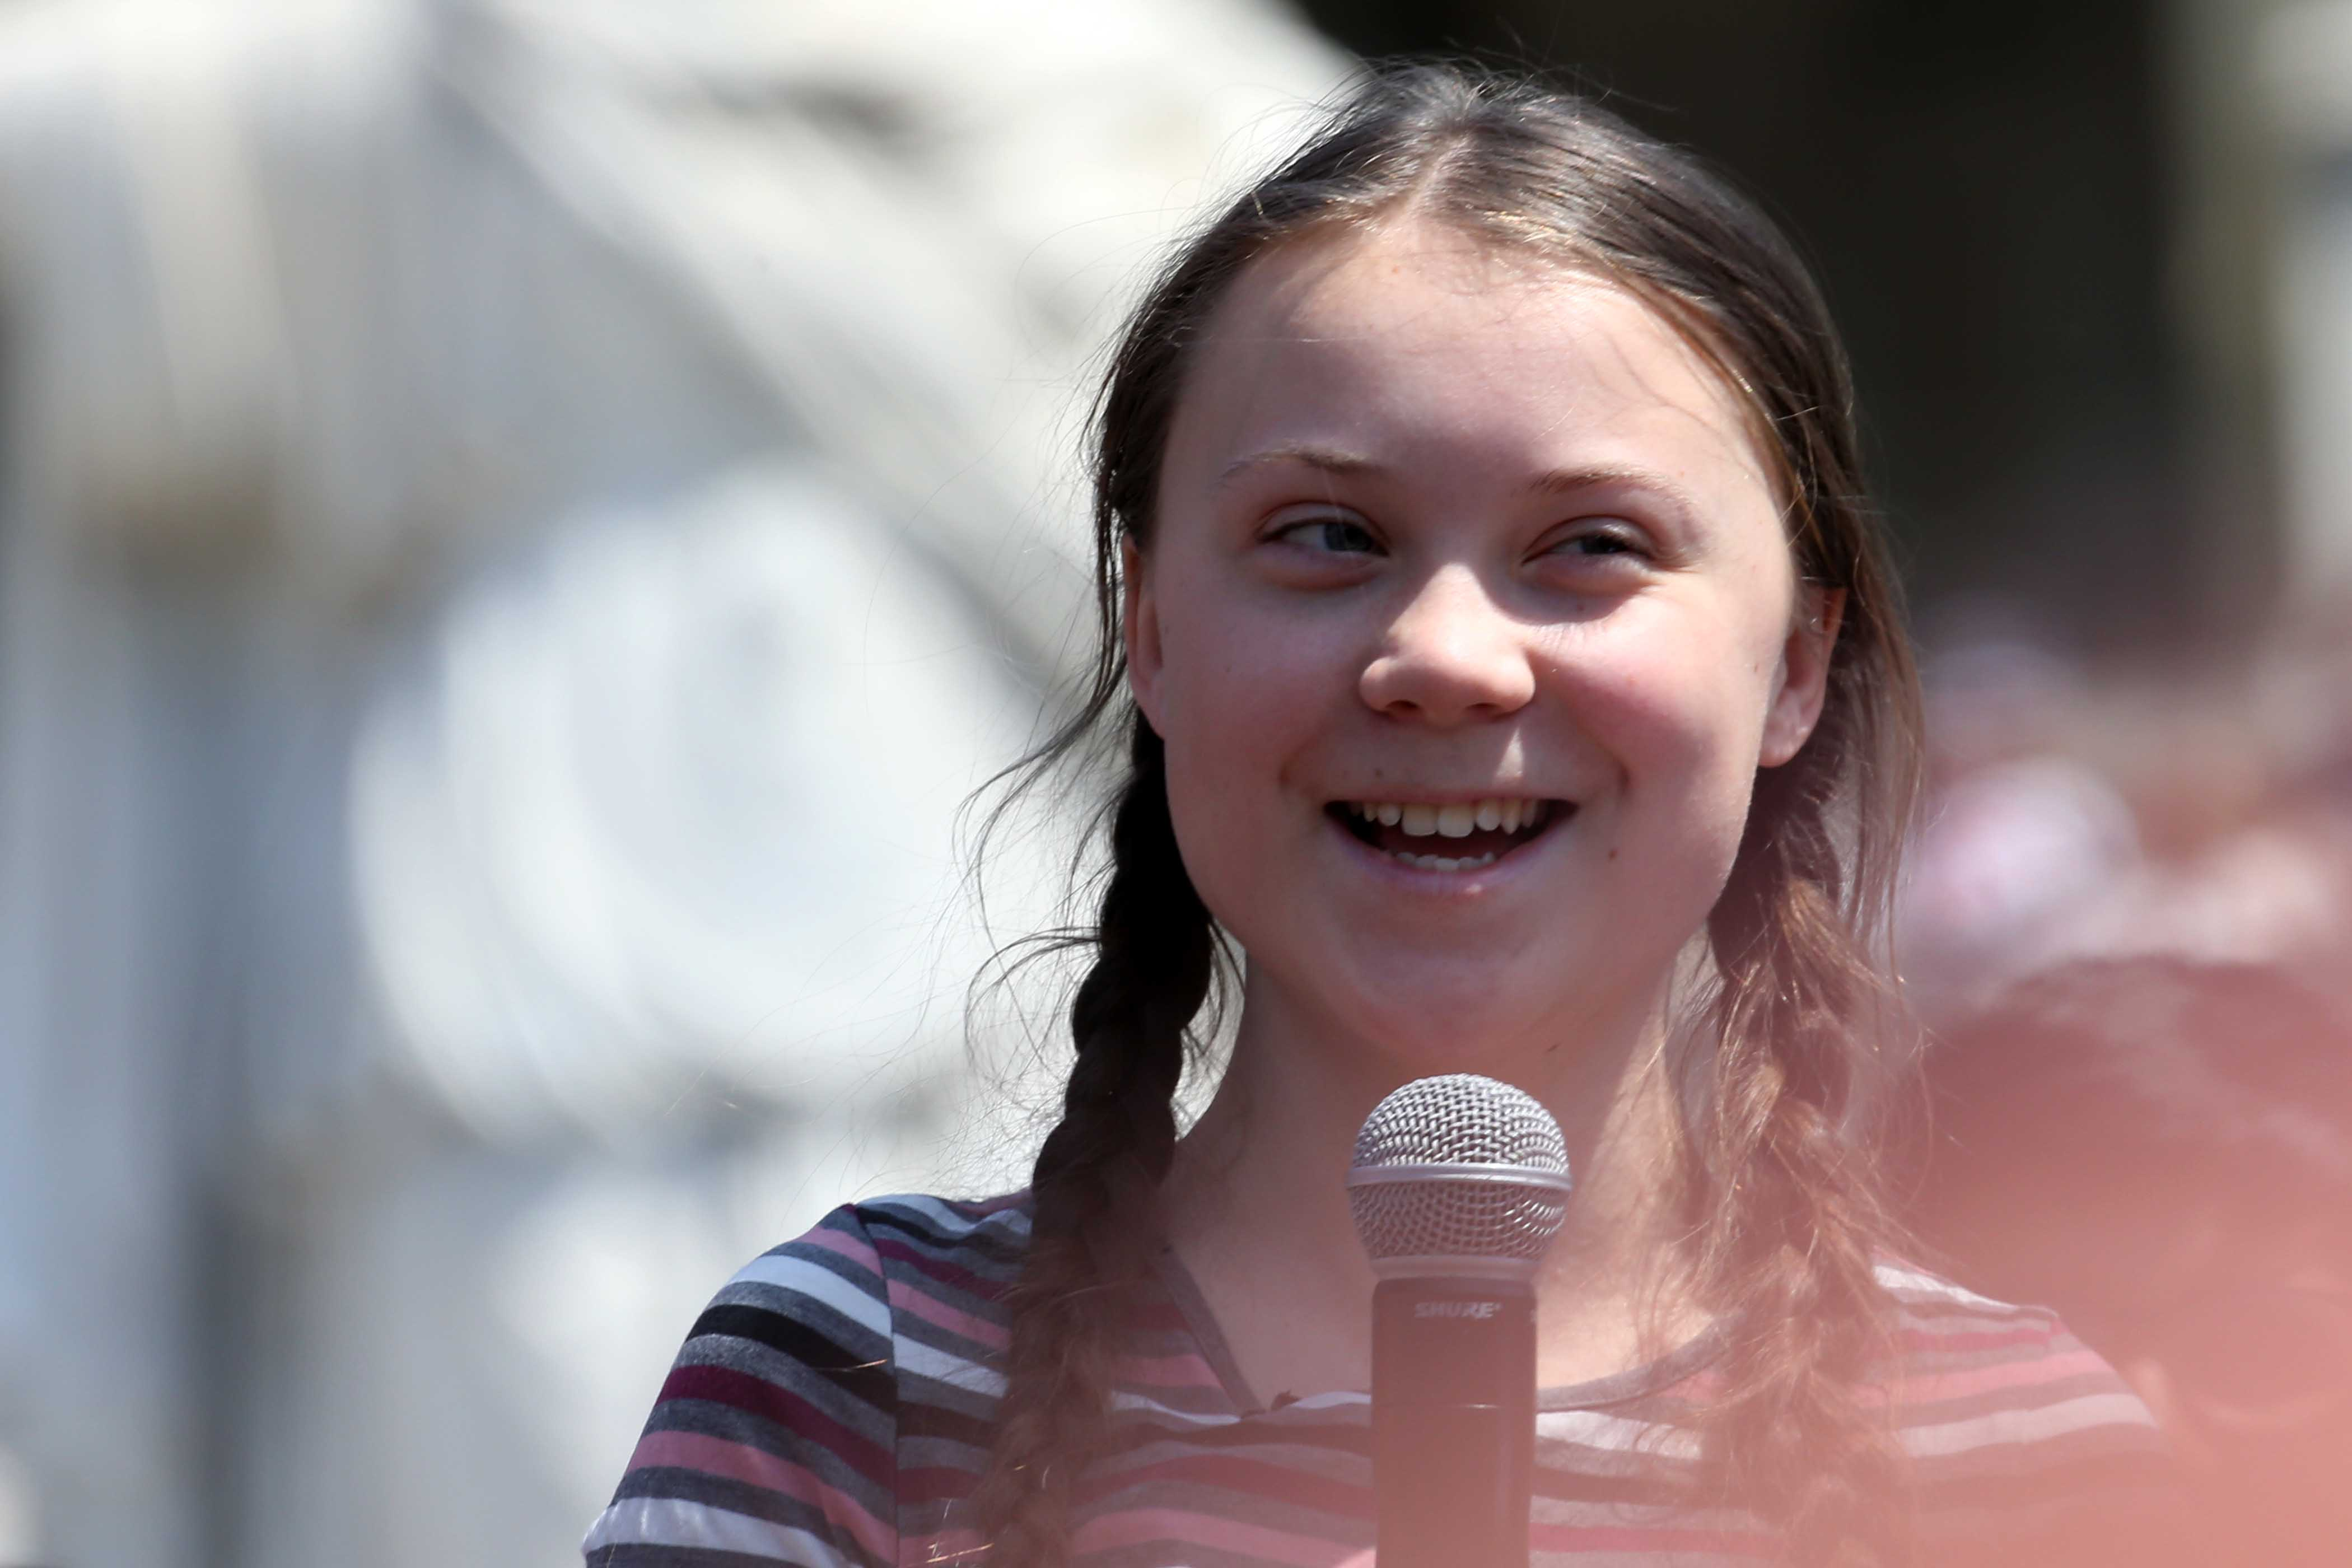 Don't stand up for Greta Thunberg because she is autistic, defend her beliefs instead